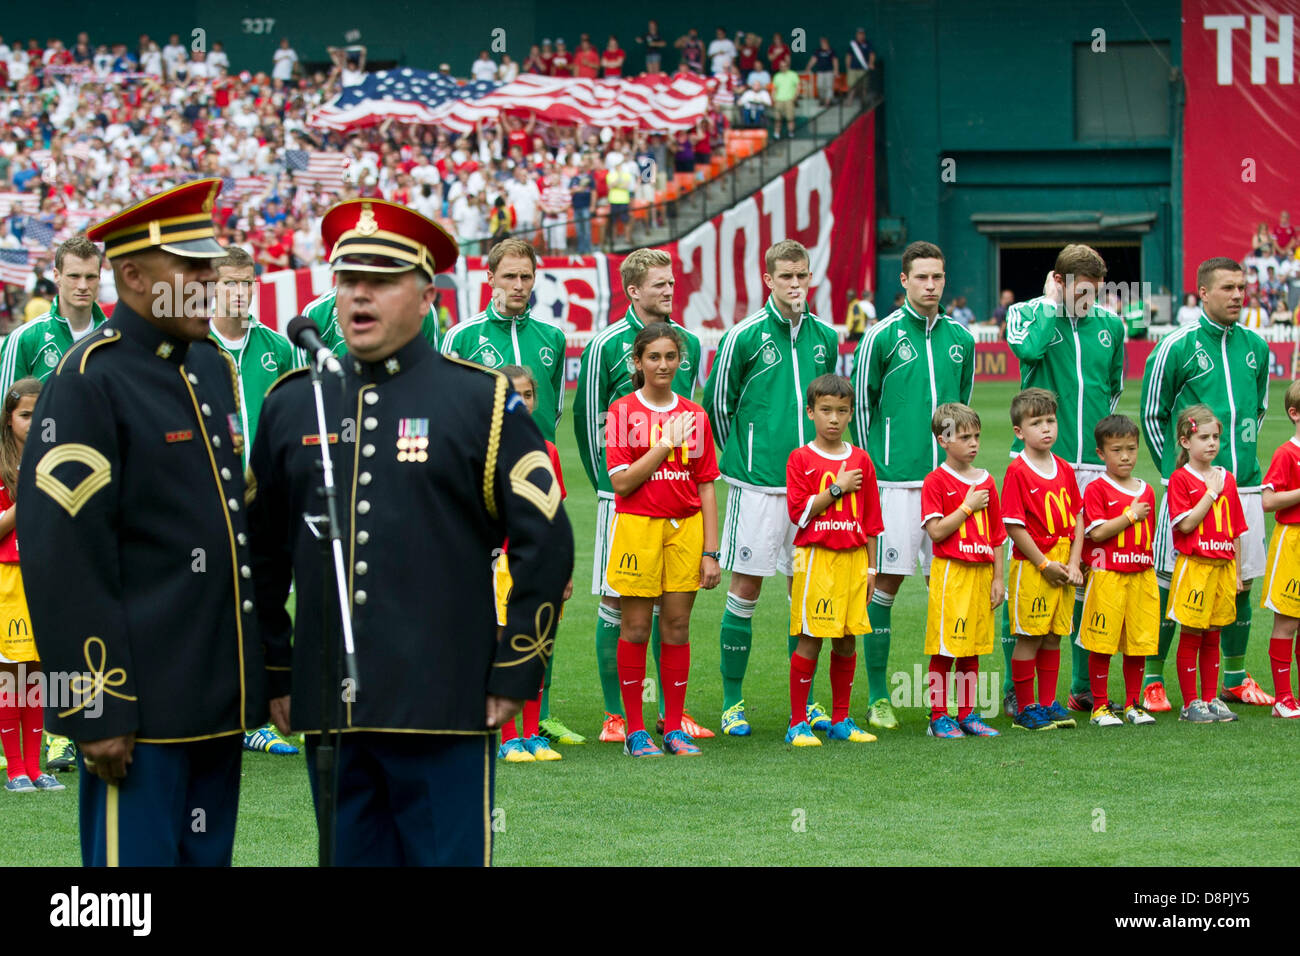 Washington DC, USA. 2nd June 2013. Members of the Armed Service's sing the National Anthem during the U.S. Men's - Stock Image